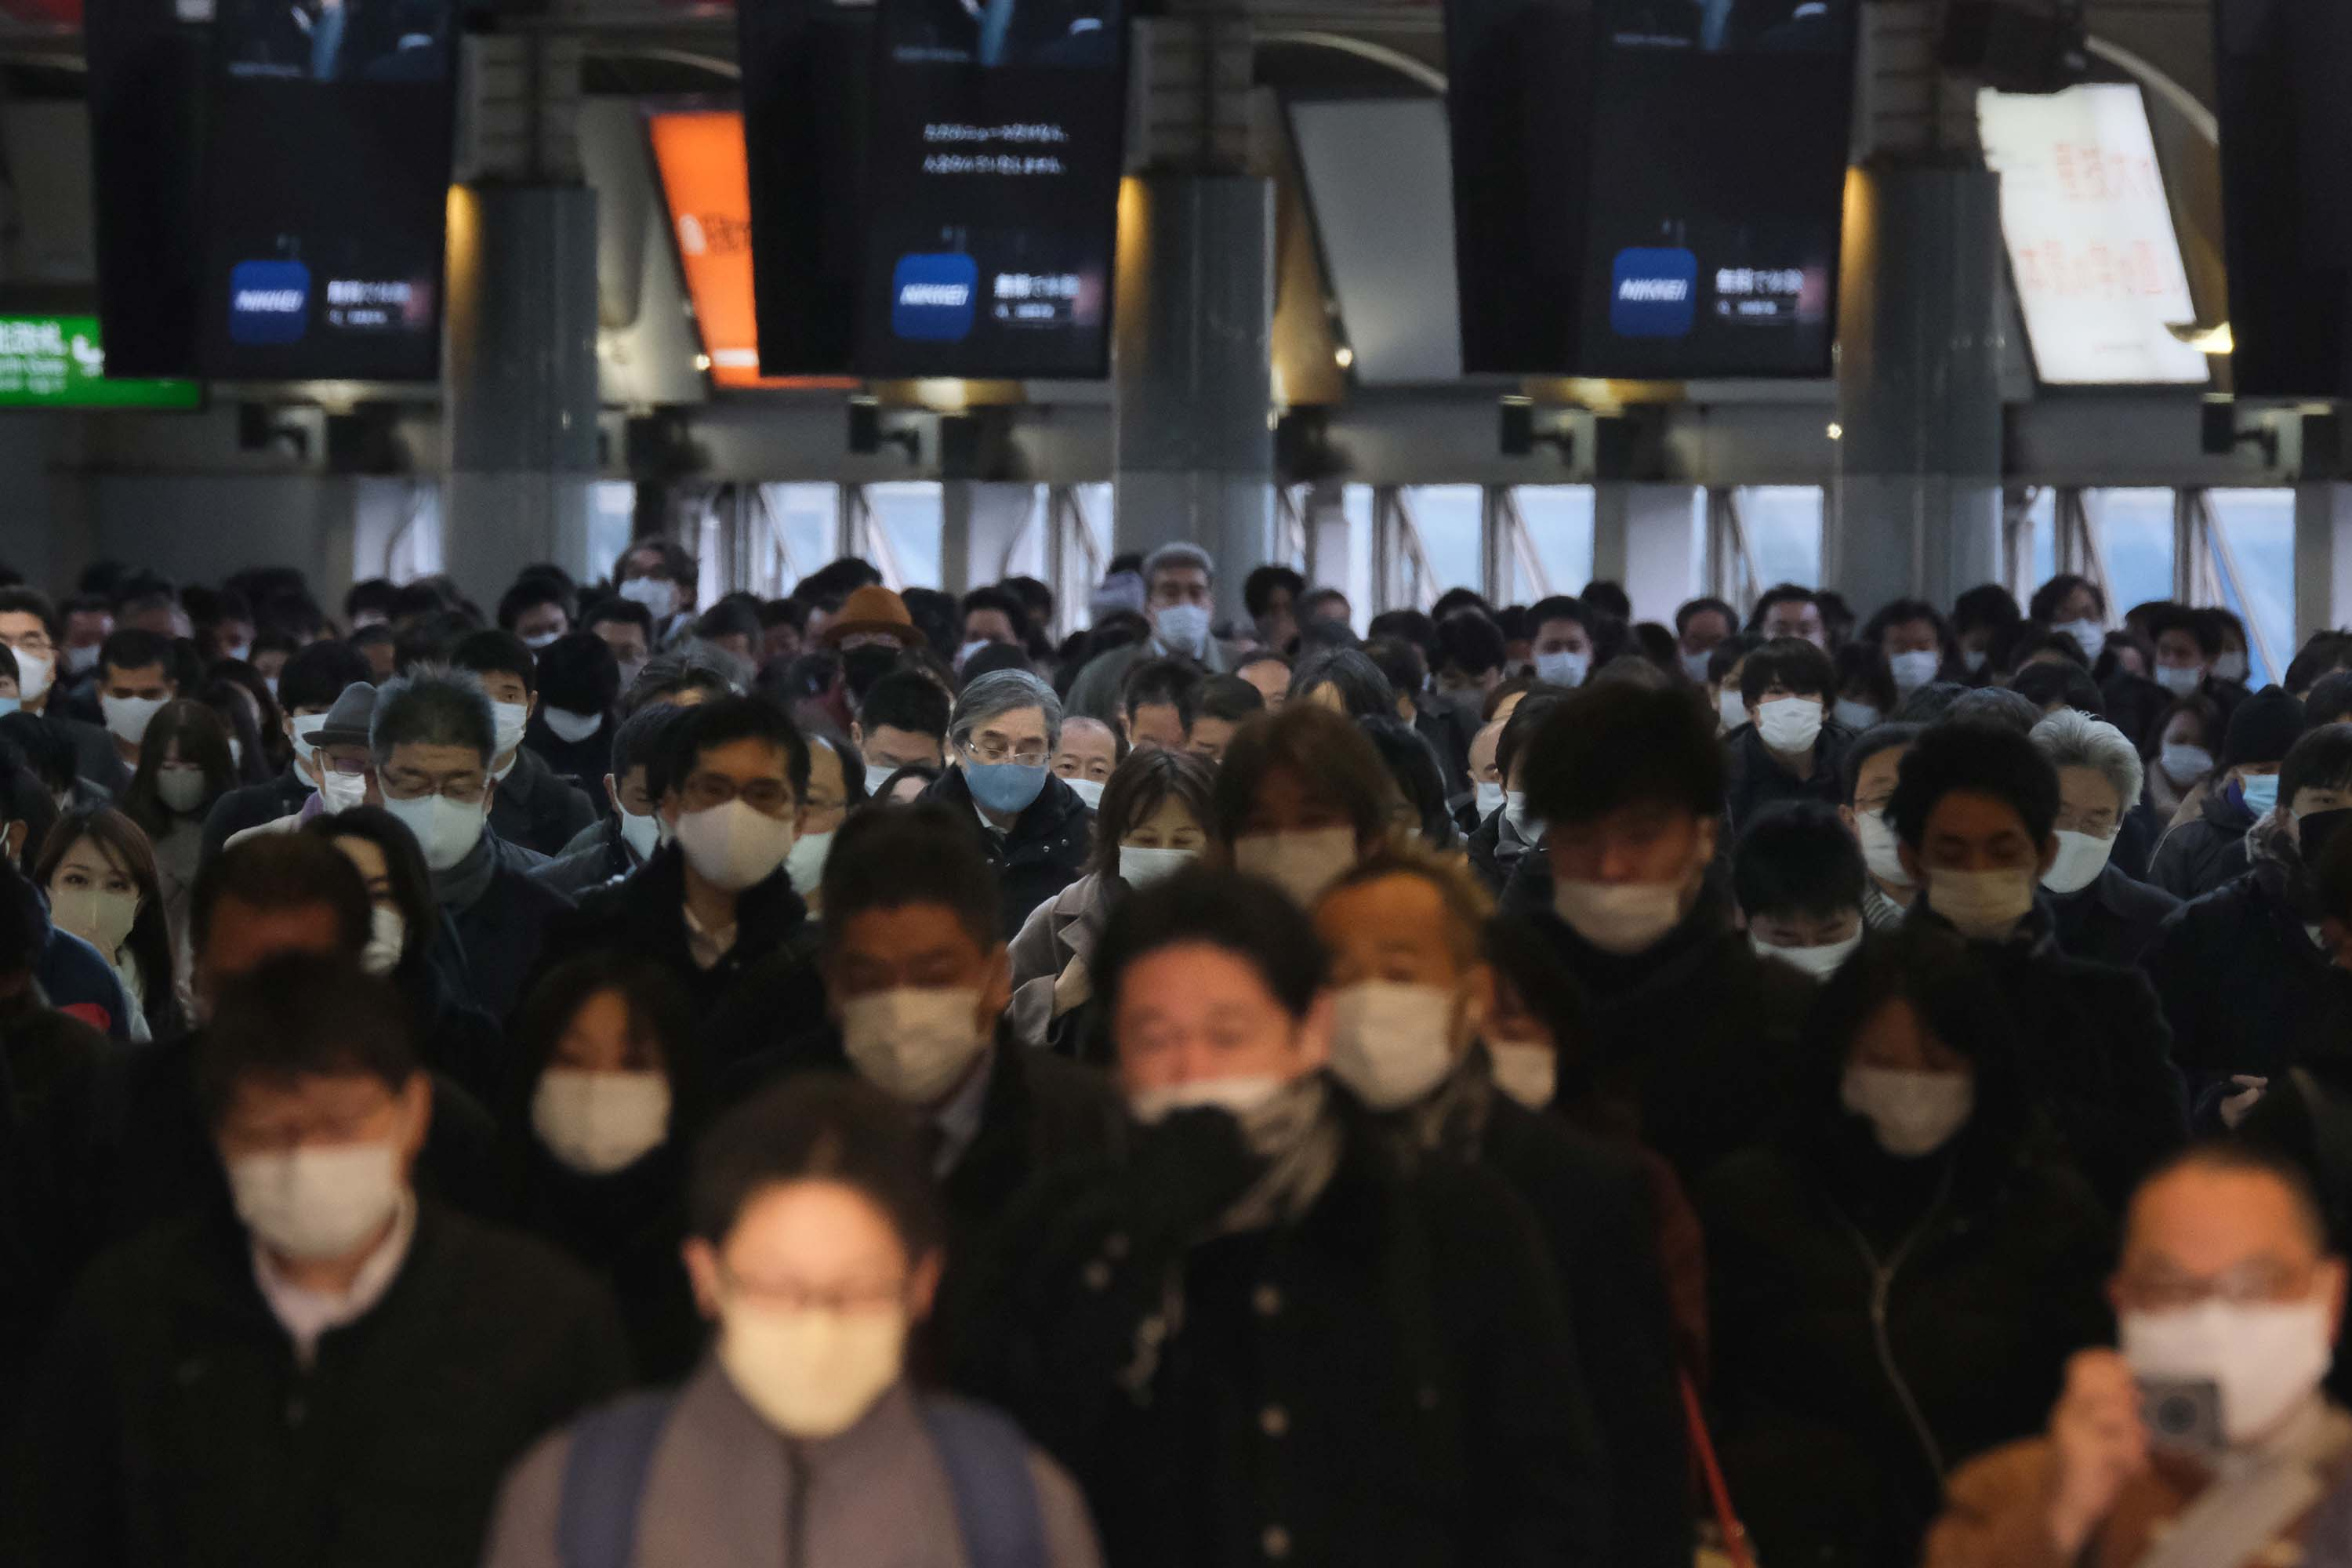 Commuters wear face masks as they make their way through Shinagawa Station in Tokyo, Japan, on January 8.